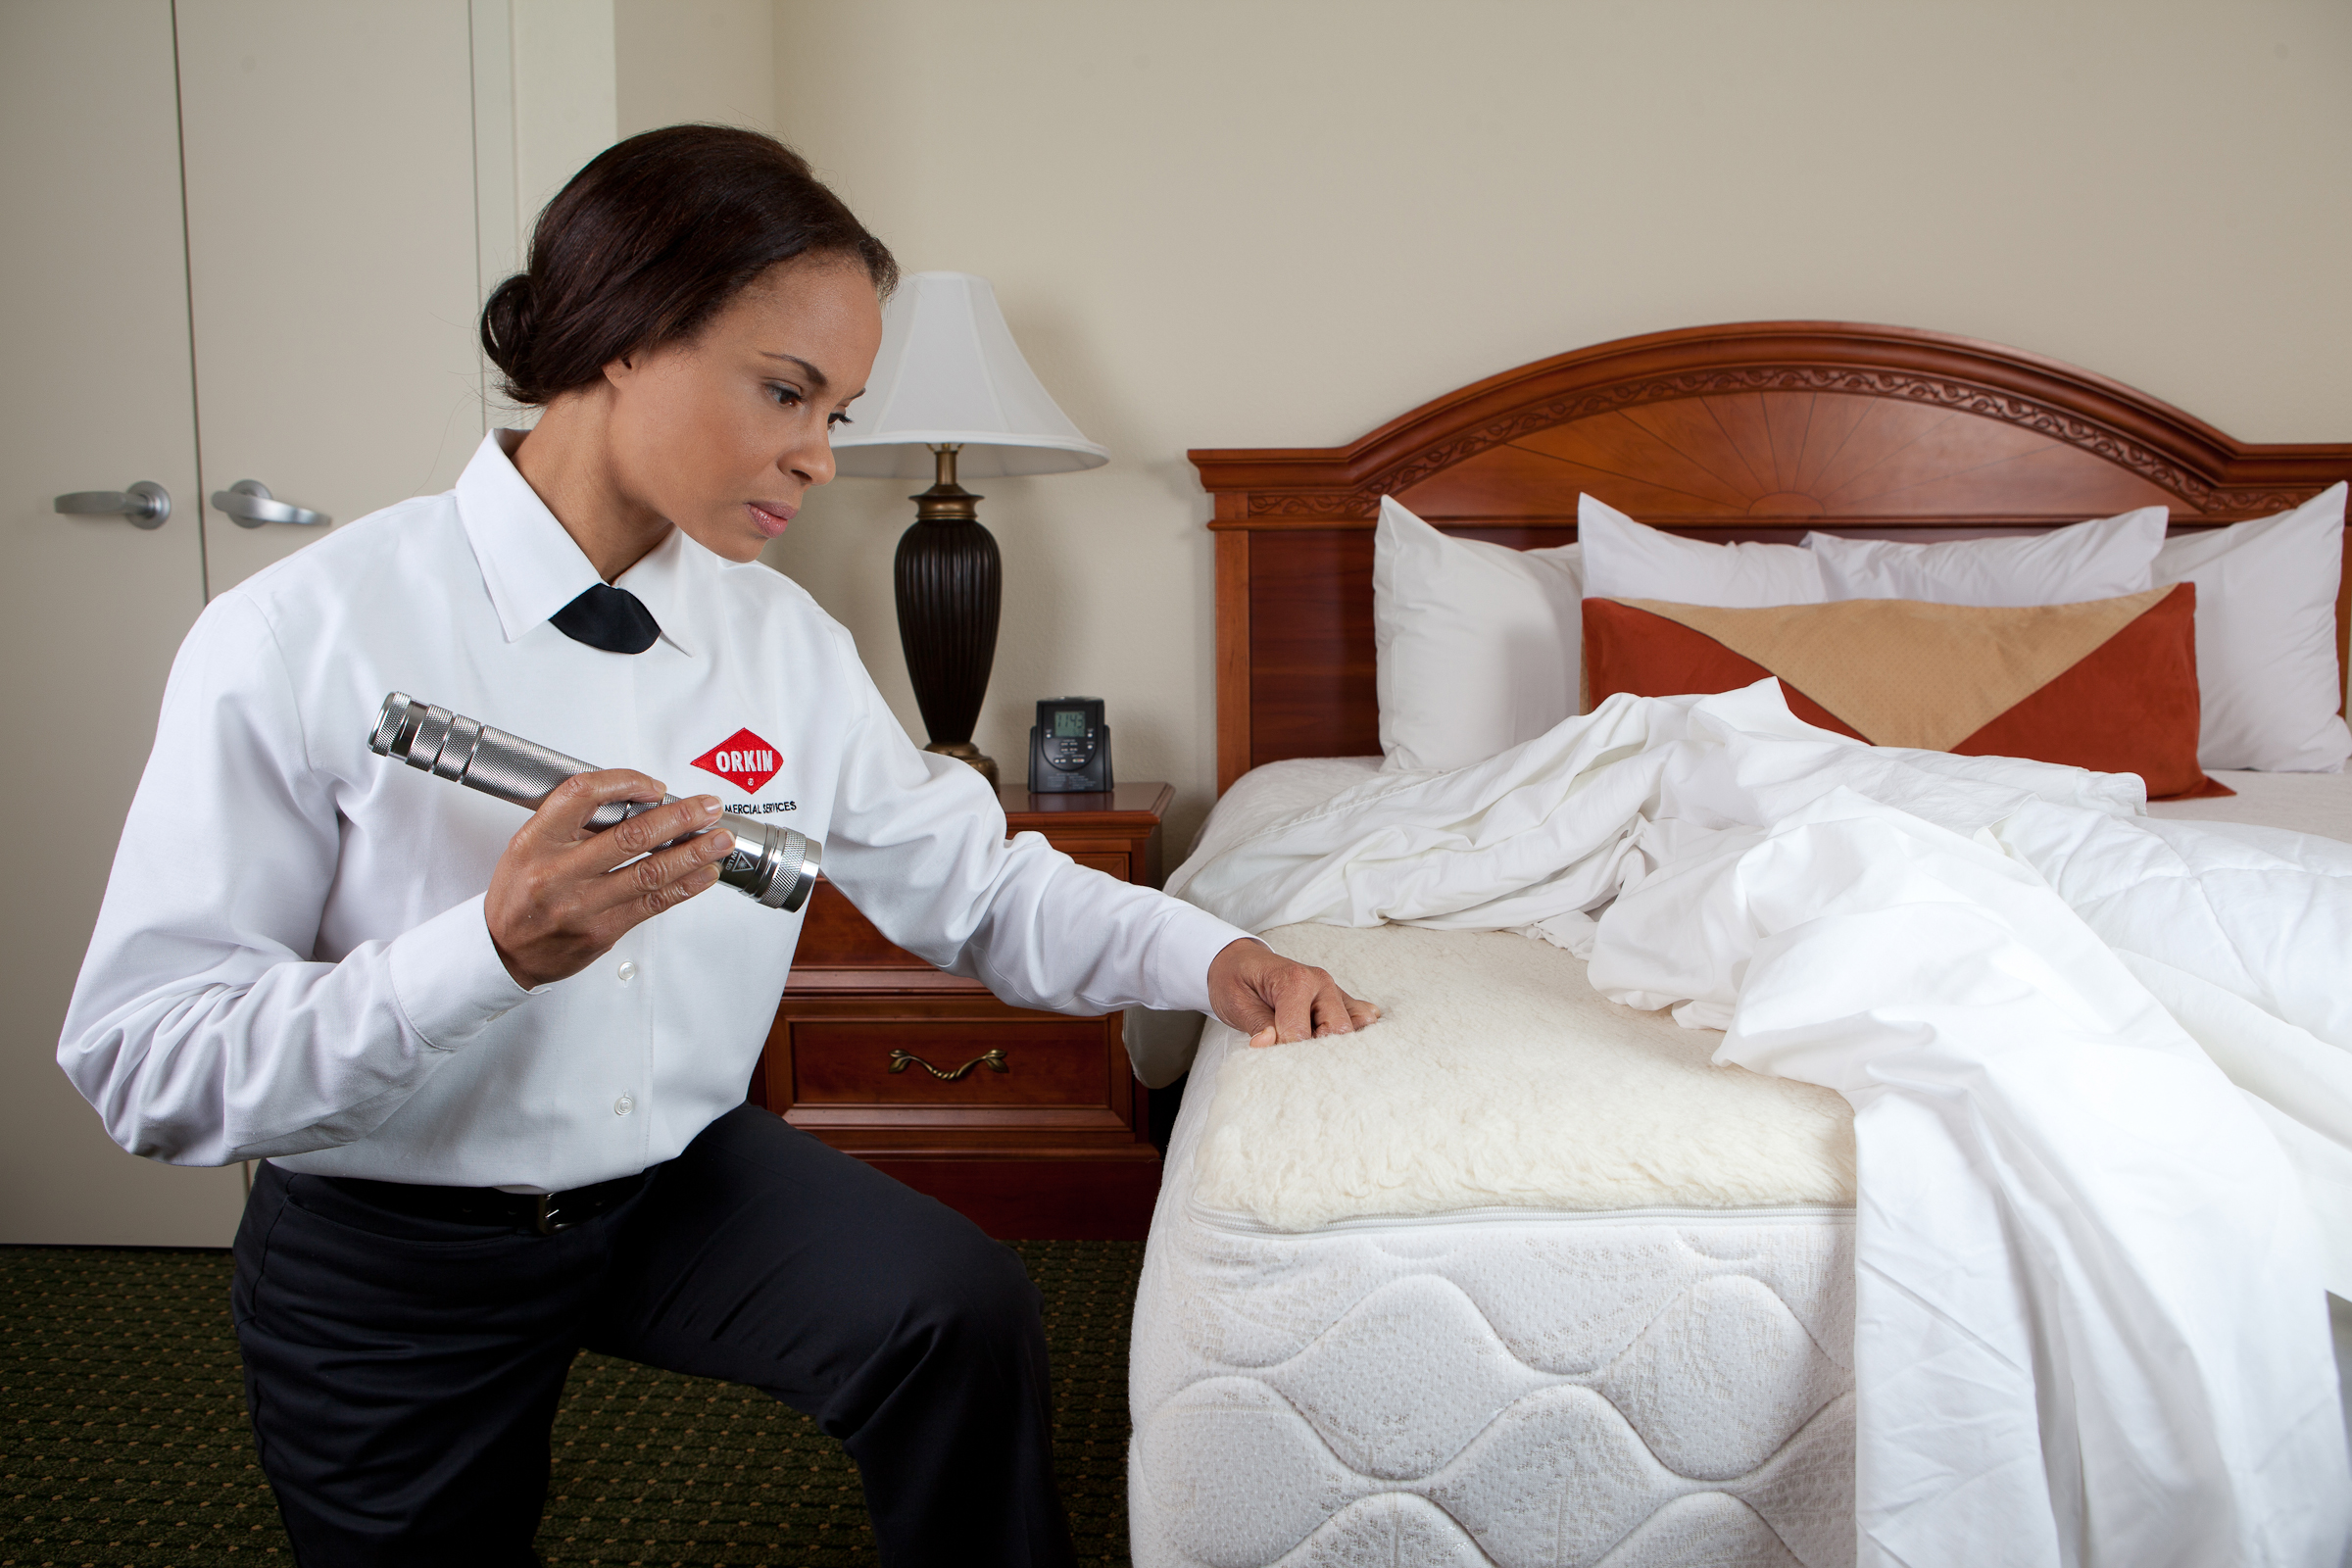 Register for Free Webinar on Combatting Bed Bugs in Hotels